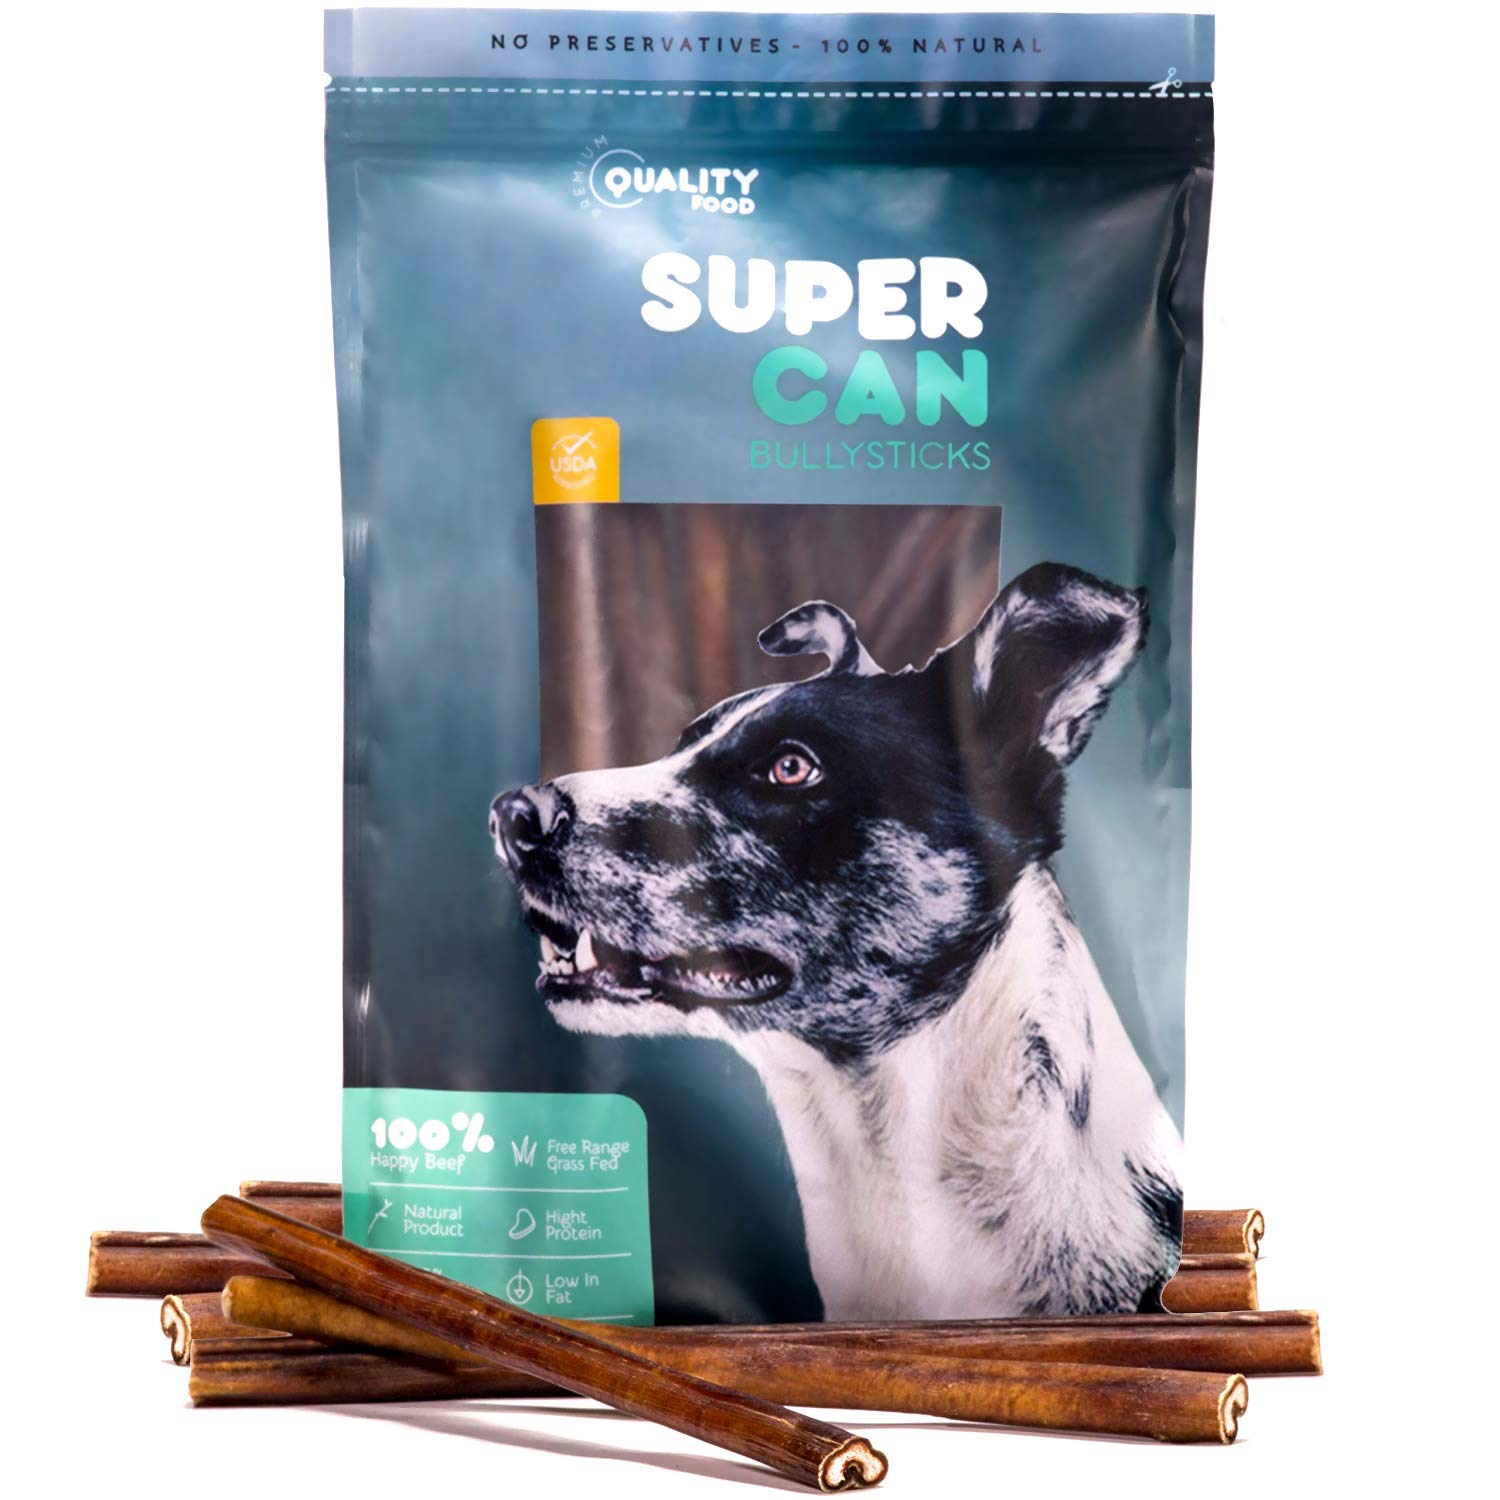 SUPER CAN BULLYSTICKS 12-inch Standard Odor Free Bully Sticks [ 20 Pack ] Premium Free Range Grass Fed Beef, 100% Natural Dog Treats and Chews. (31oz / 1.94 lb)